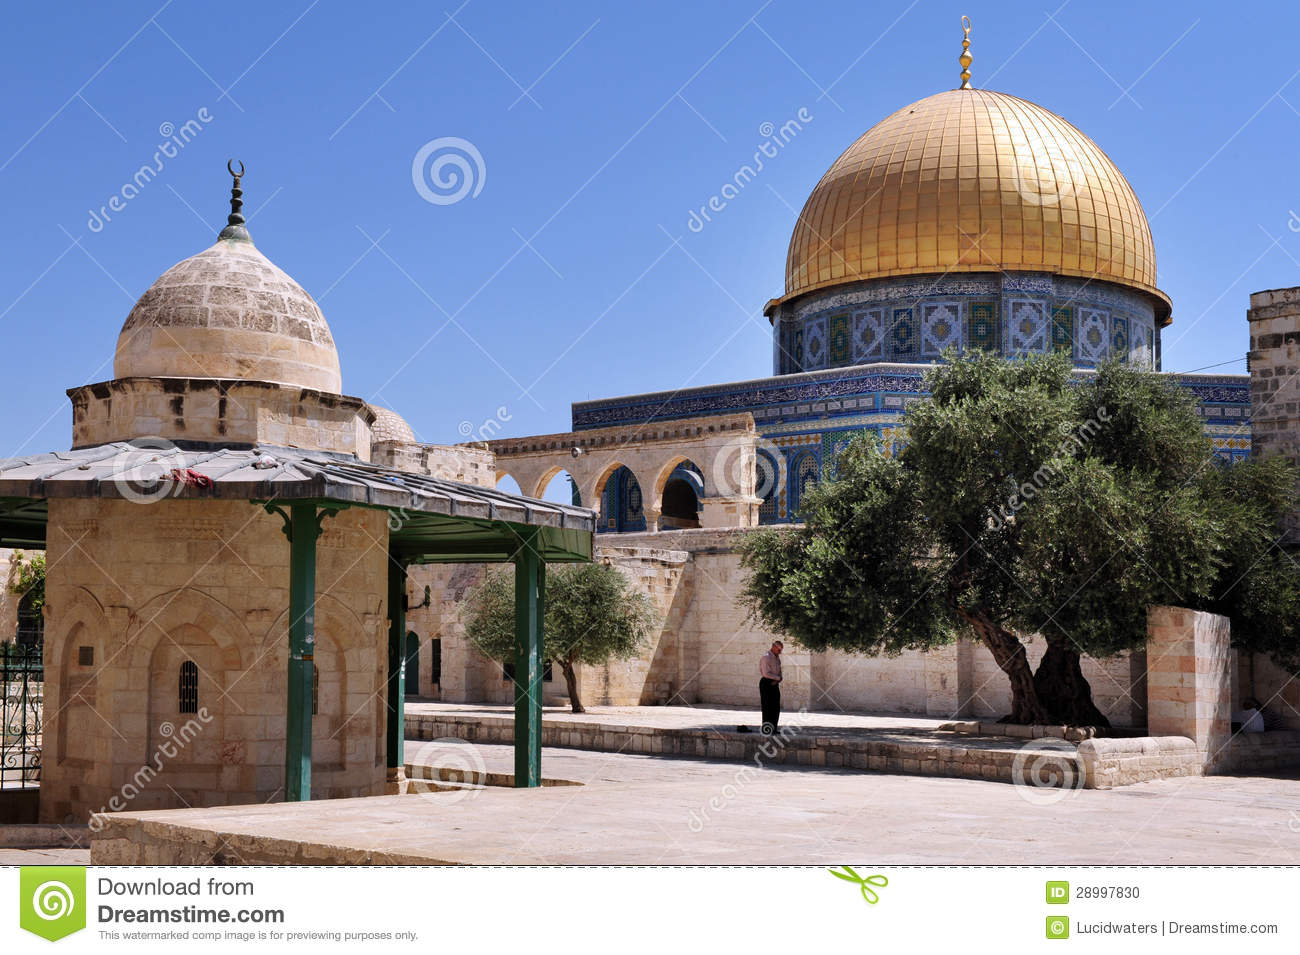 temple city muslim Find muslim temple stock images in hd and millions of other royalty-free stock photos, illustrations, and vectors in the shutterstock collection thousands of new, high-quality pictures added every day.